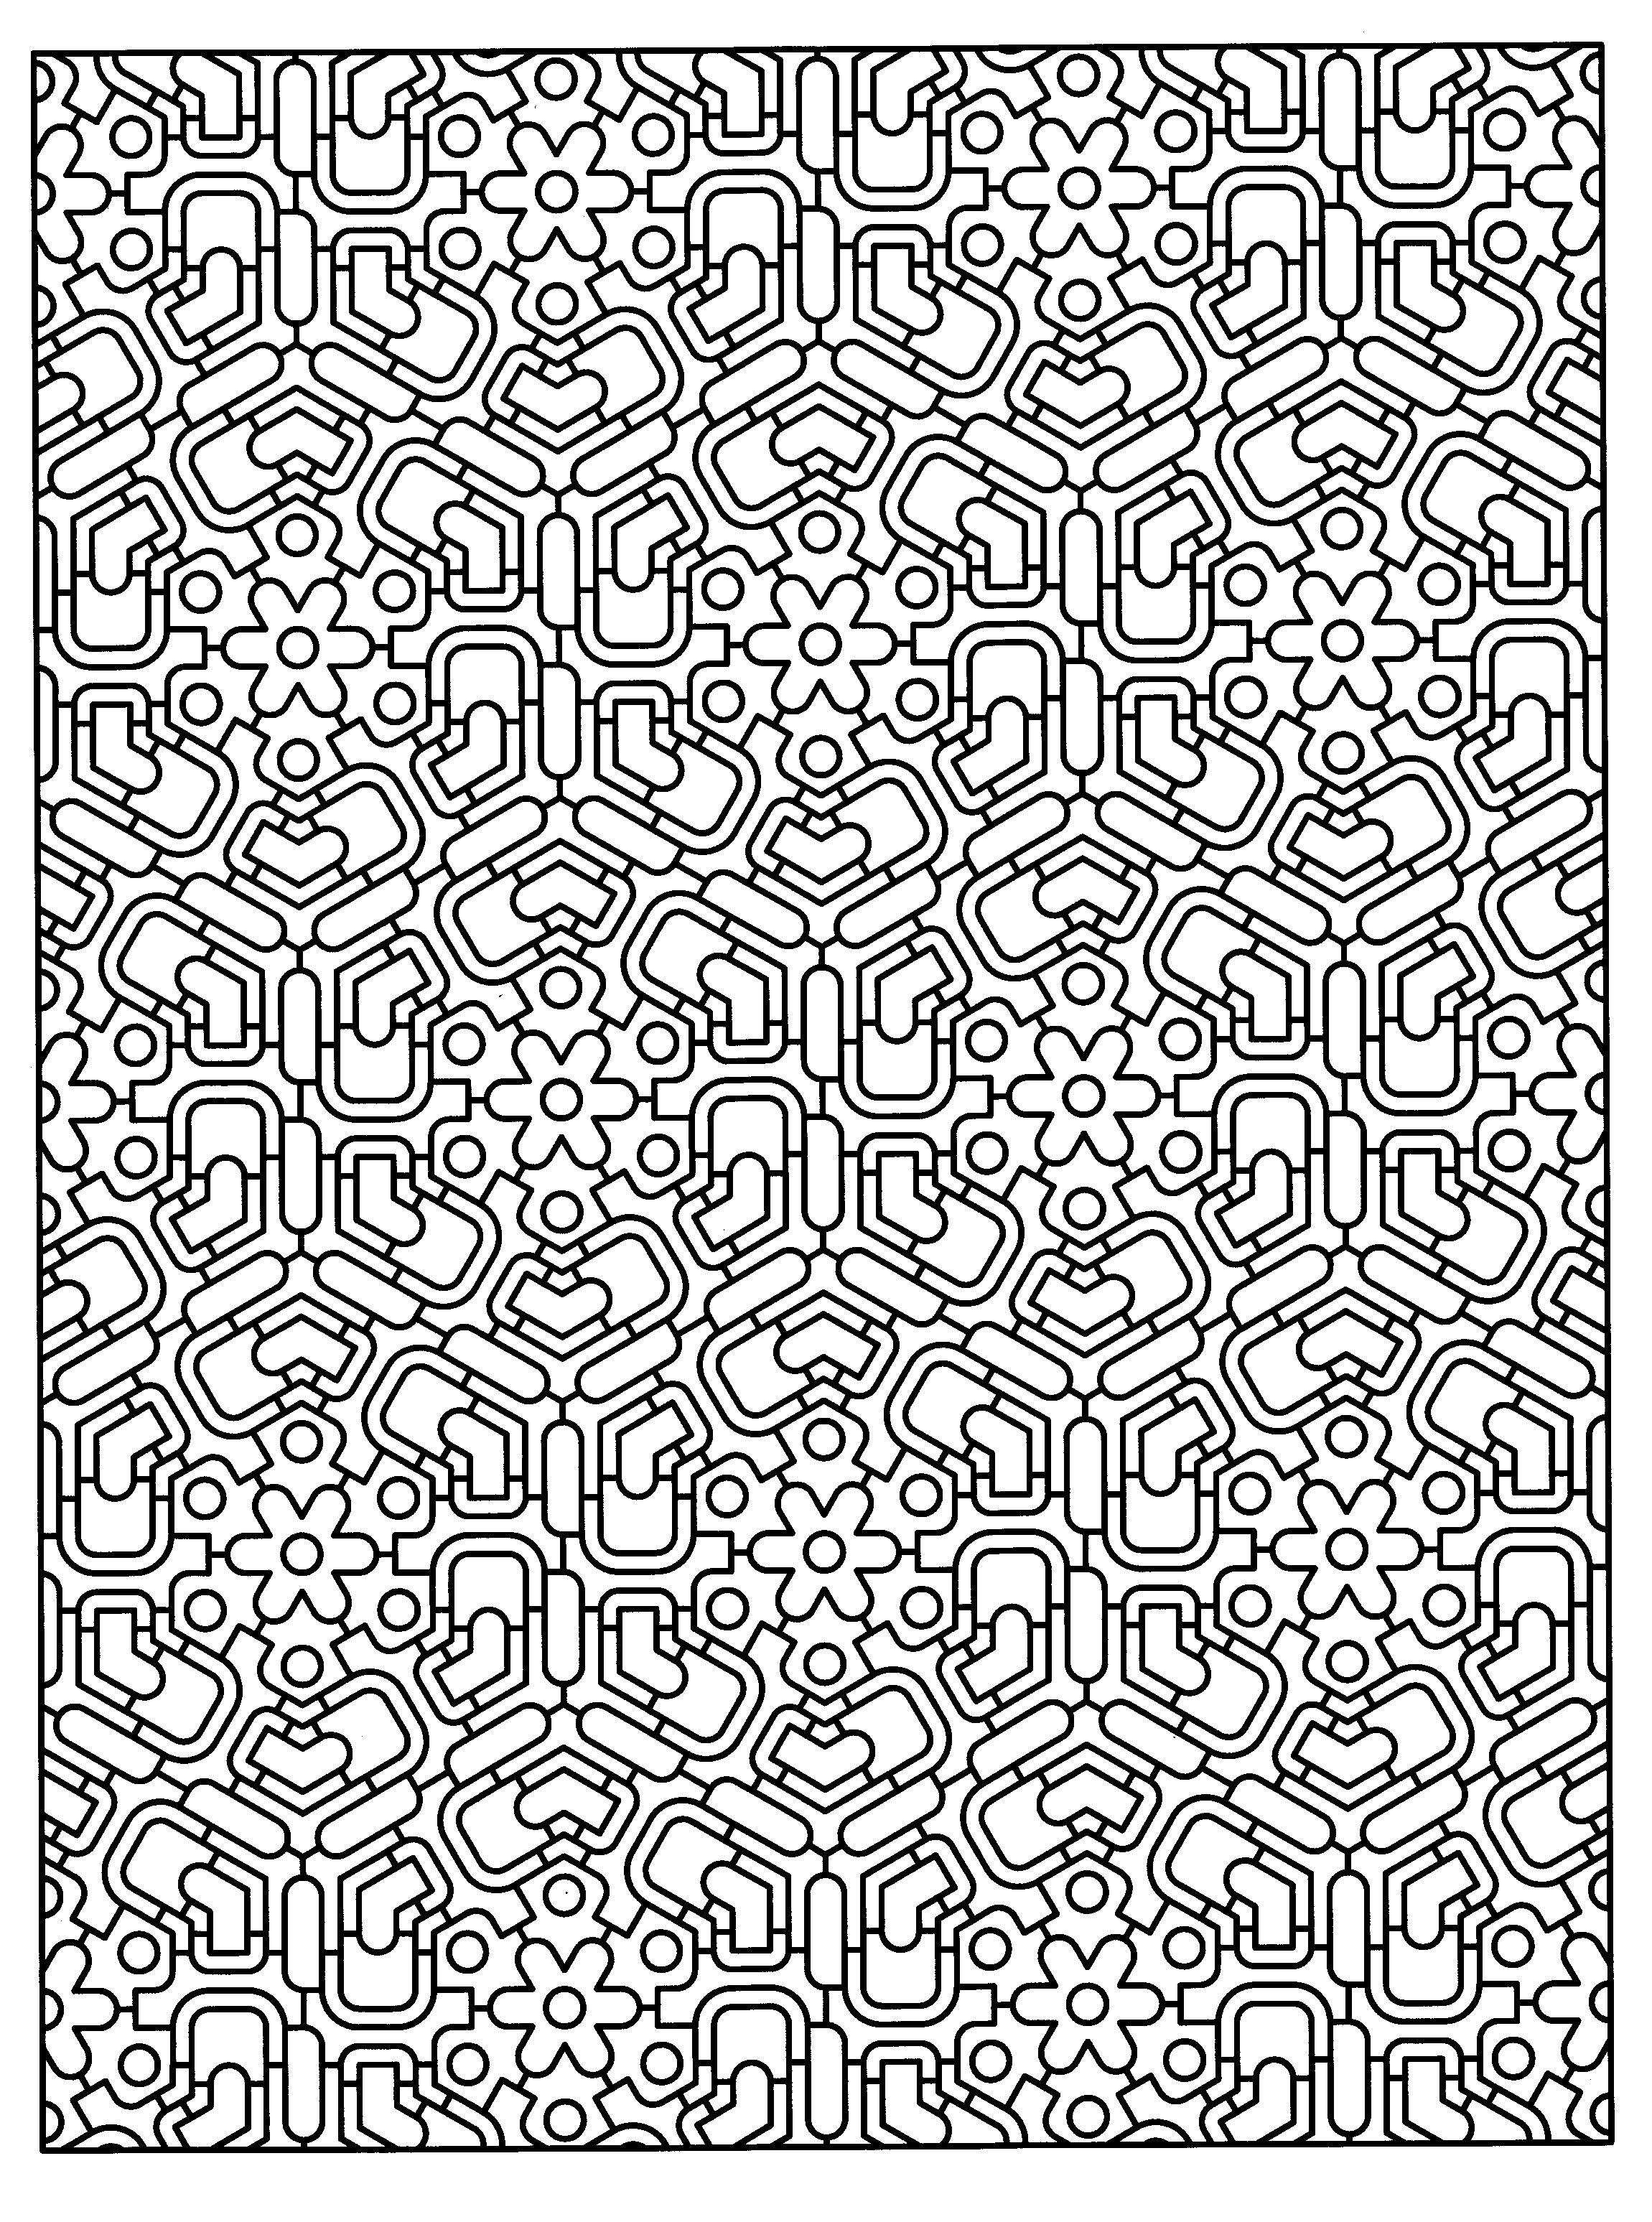 dover/ coloring pages for grownups | Mandalas | Pinterest ...